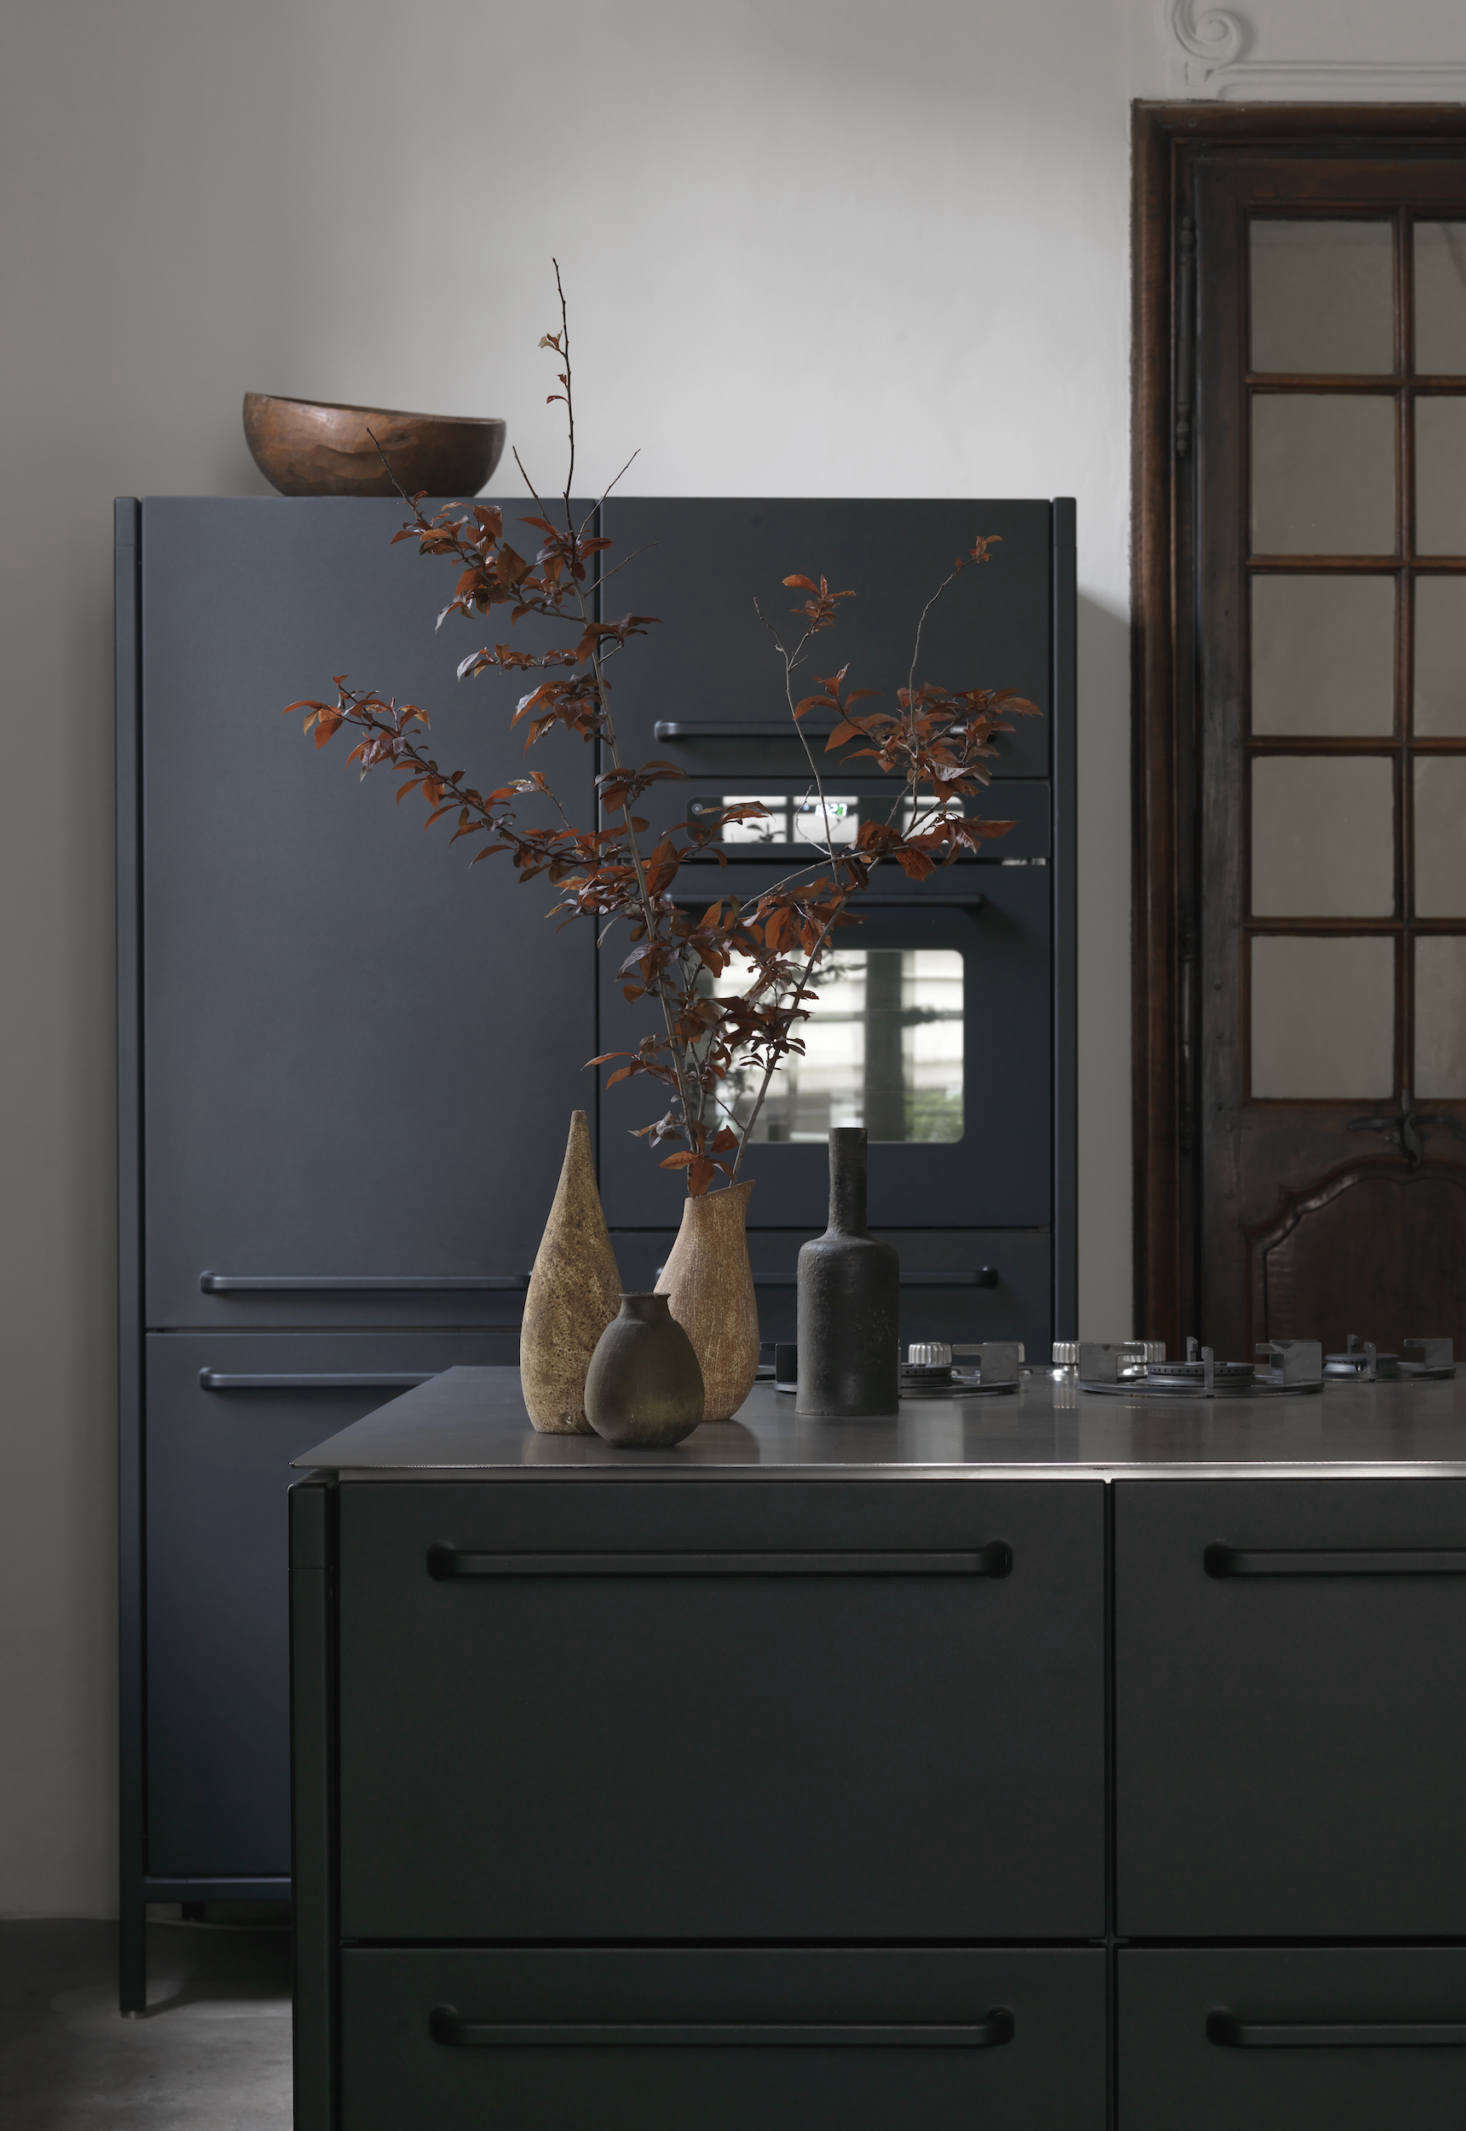 """""""We bought the kitchen in Denmark after having seen it in a magazine. Being half Danish, I do have a predilection for the design traditions and functional philosophy expressed in the Vipp kitchen and other Danish designs,&#8"""